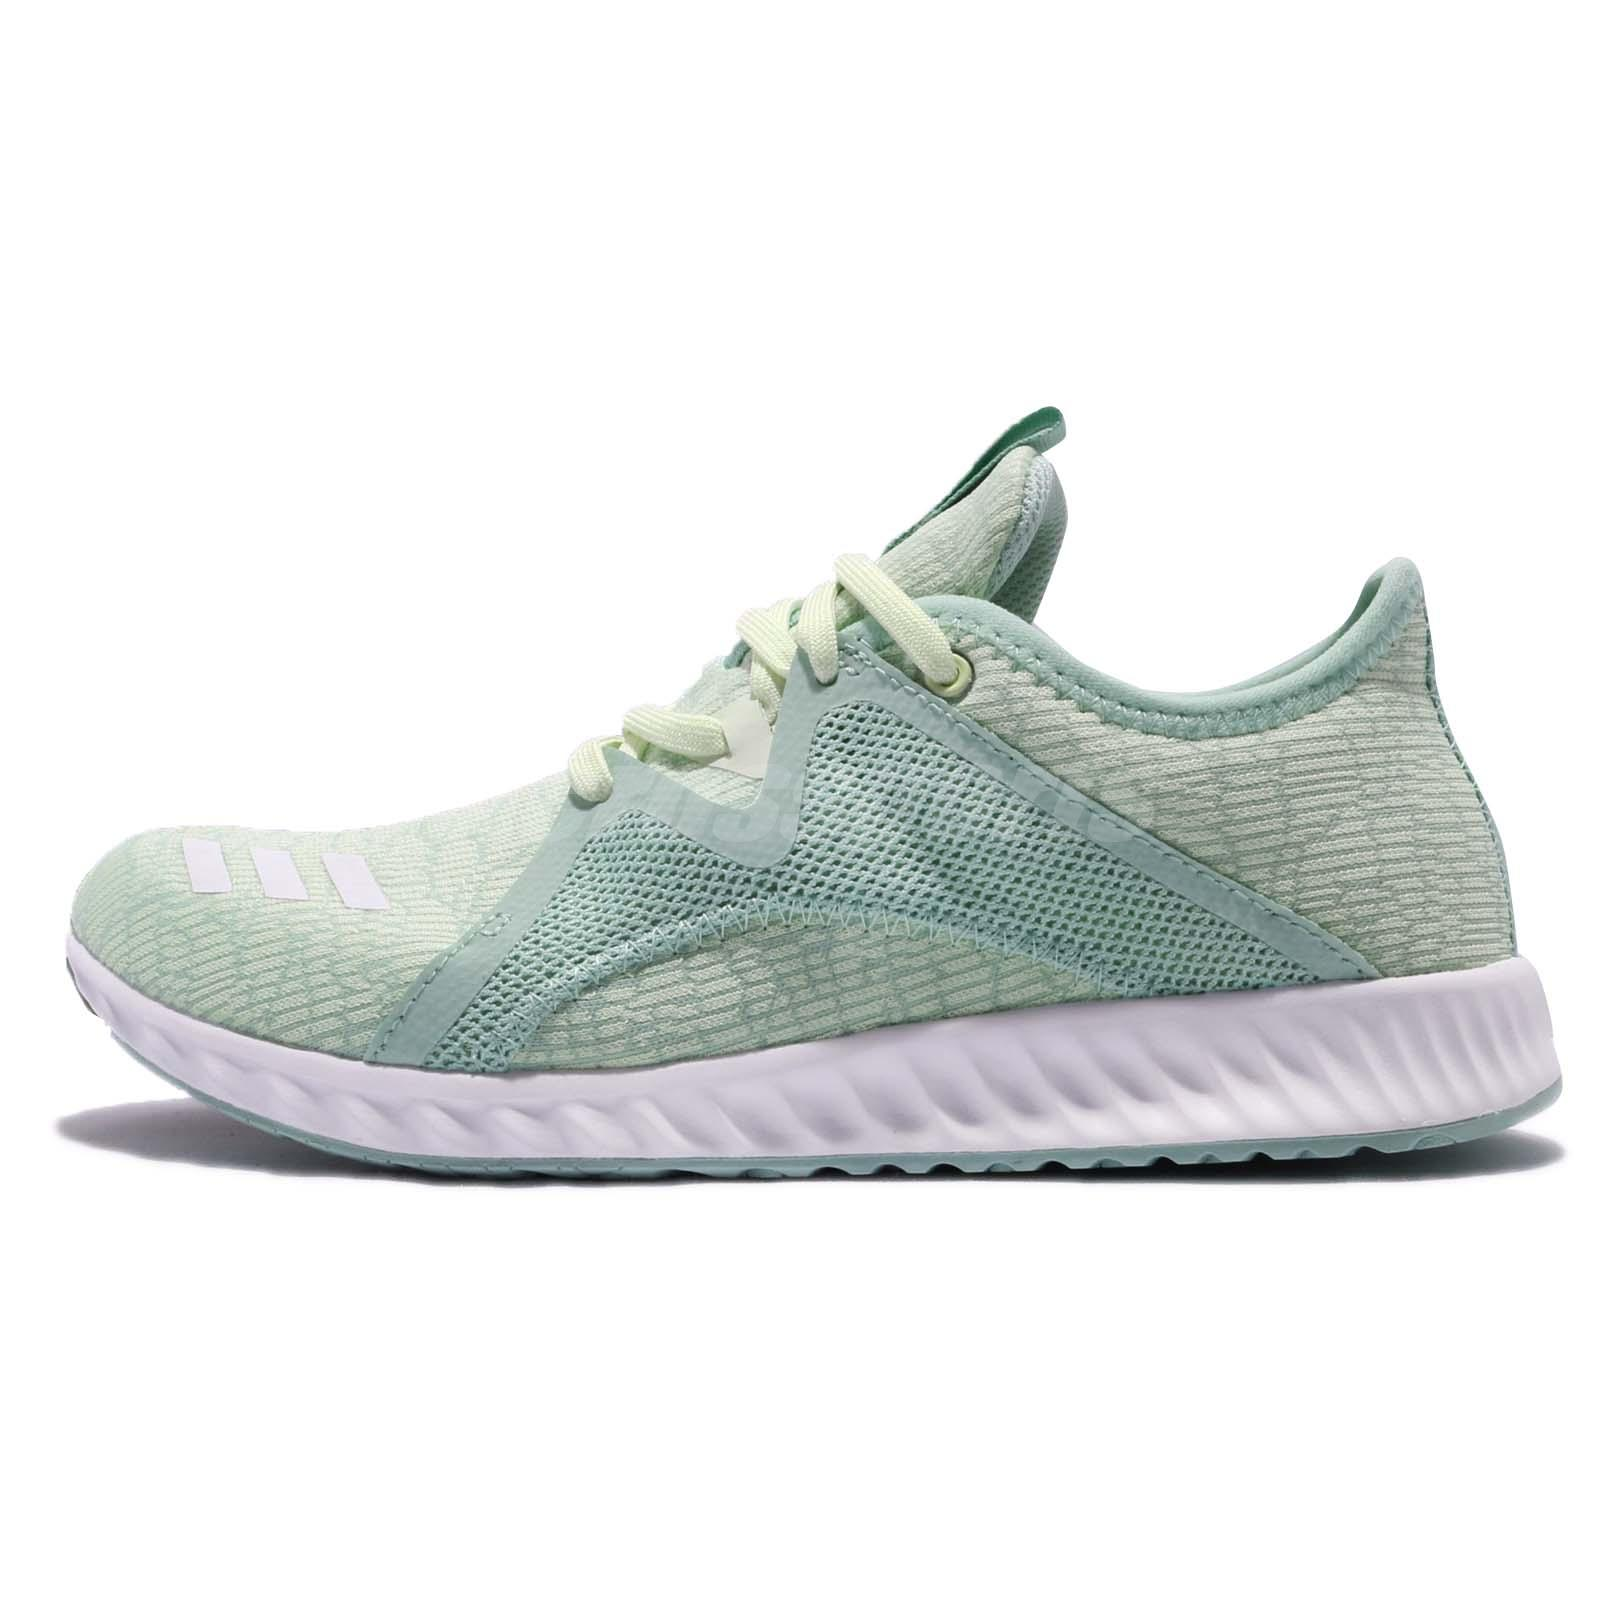 5624c30a046 adidas Edge Lux 2 W II Green White Women Running Athletic Shoes Sneakers  CQ1643